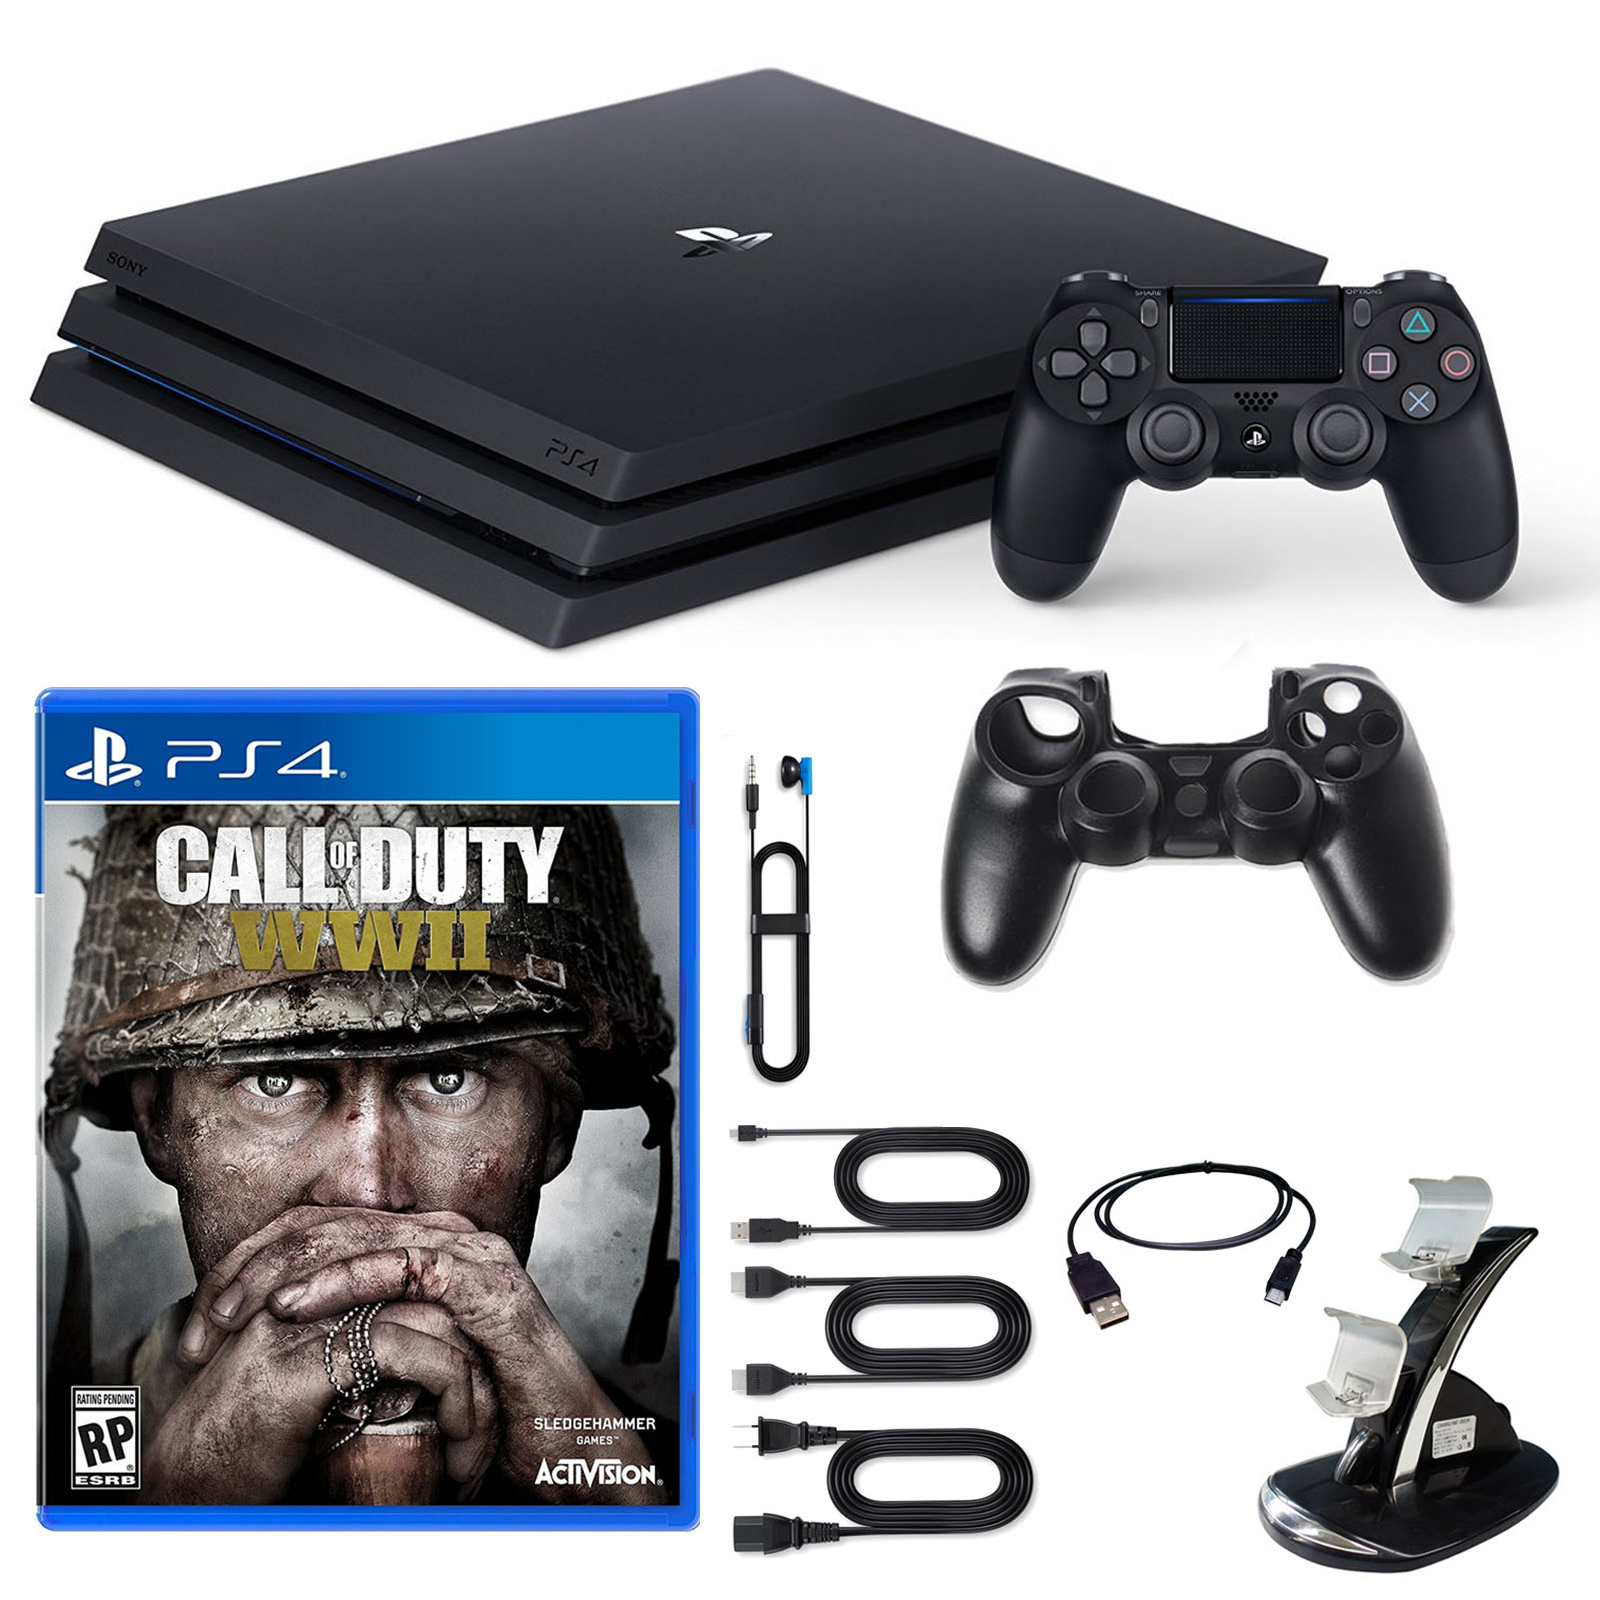 PlayStation 4 Pro Console COD WWII and Accessories by PlayStation